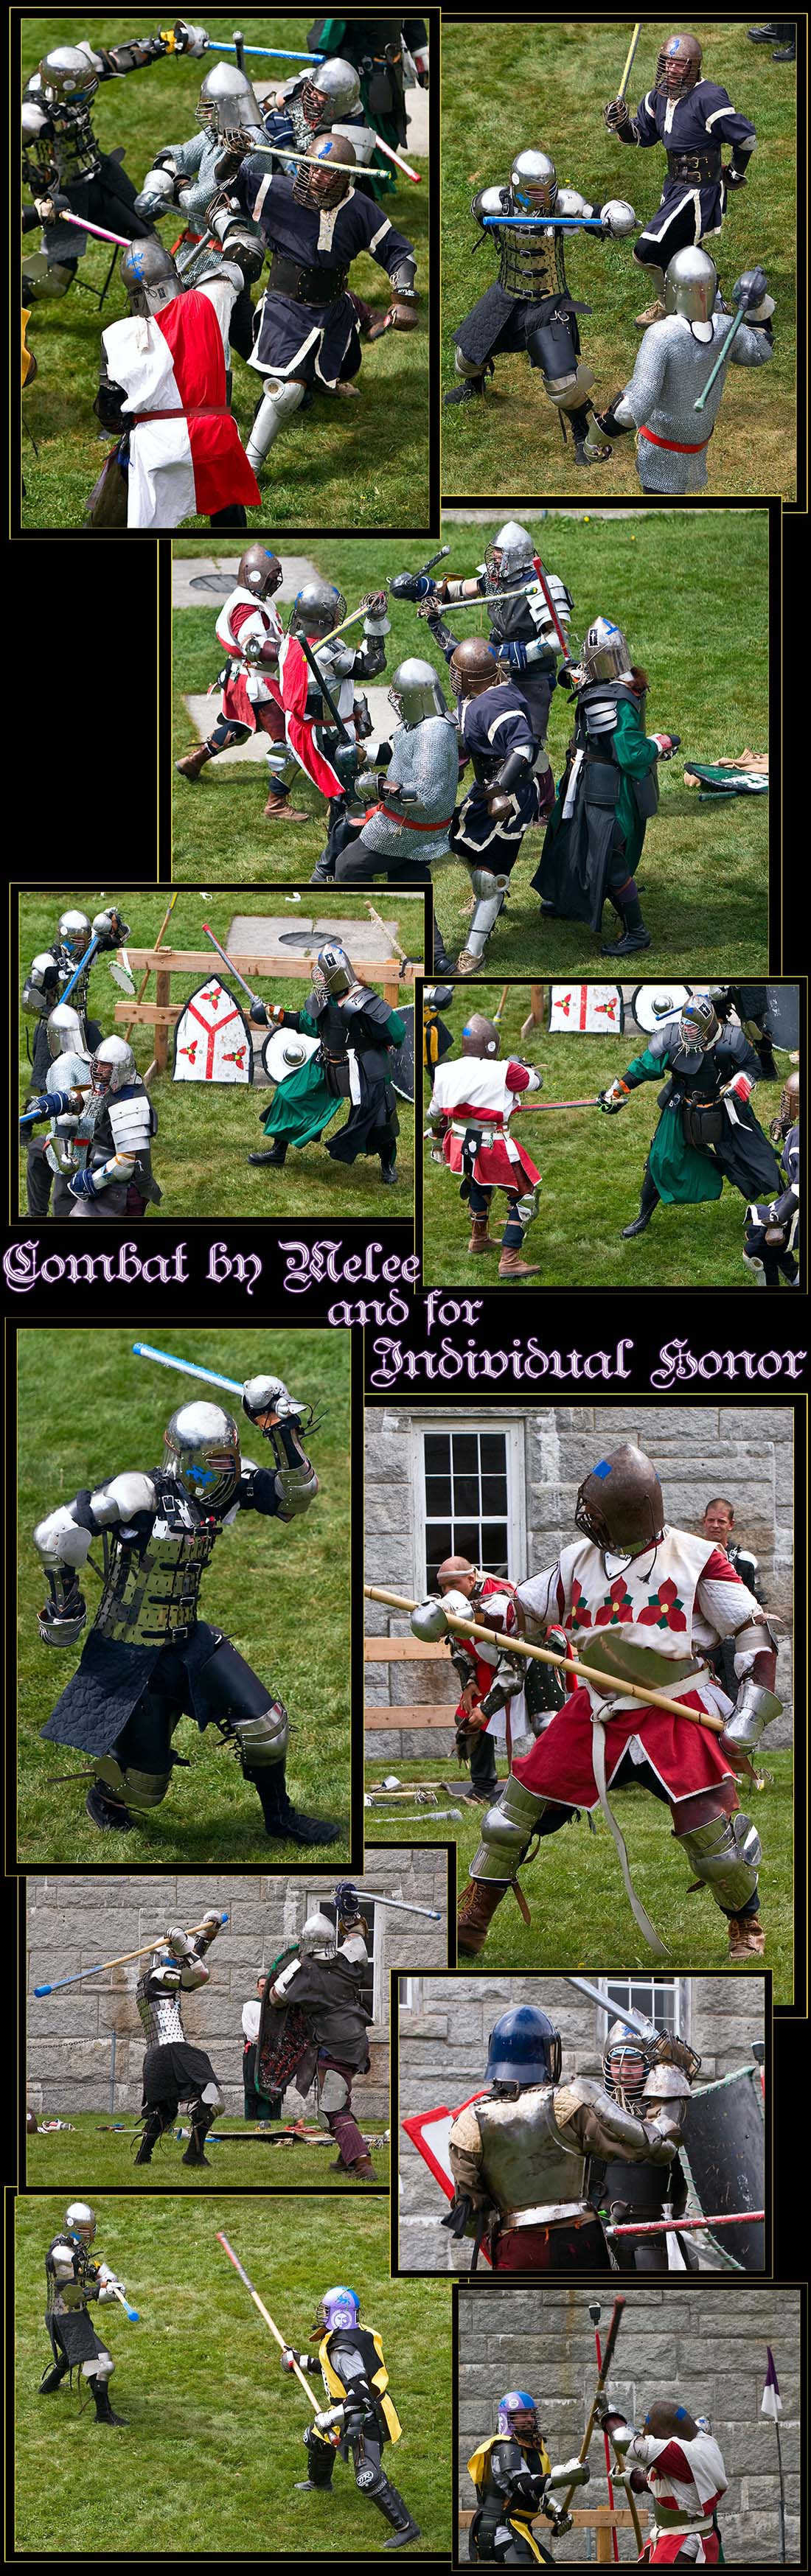 Views of the Pas d'Armes Tournament of Knightly Combat